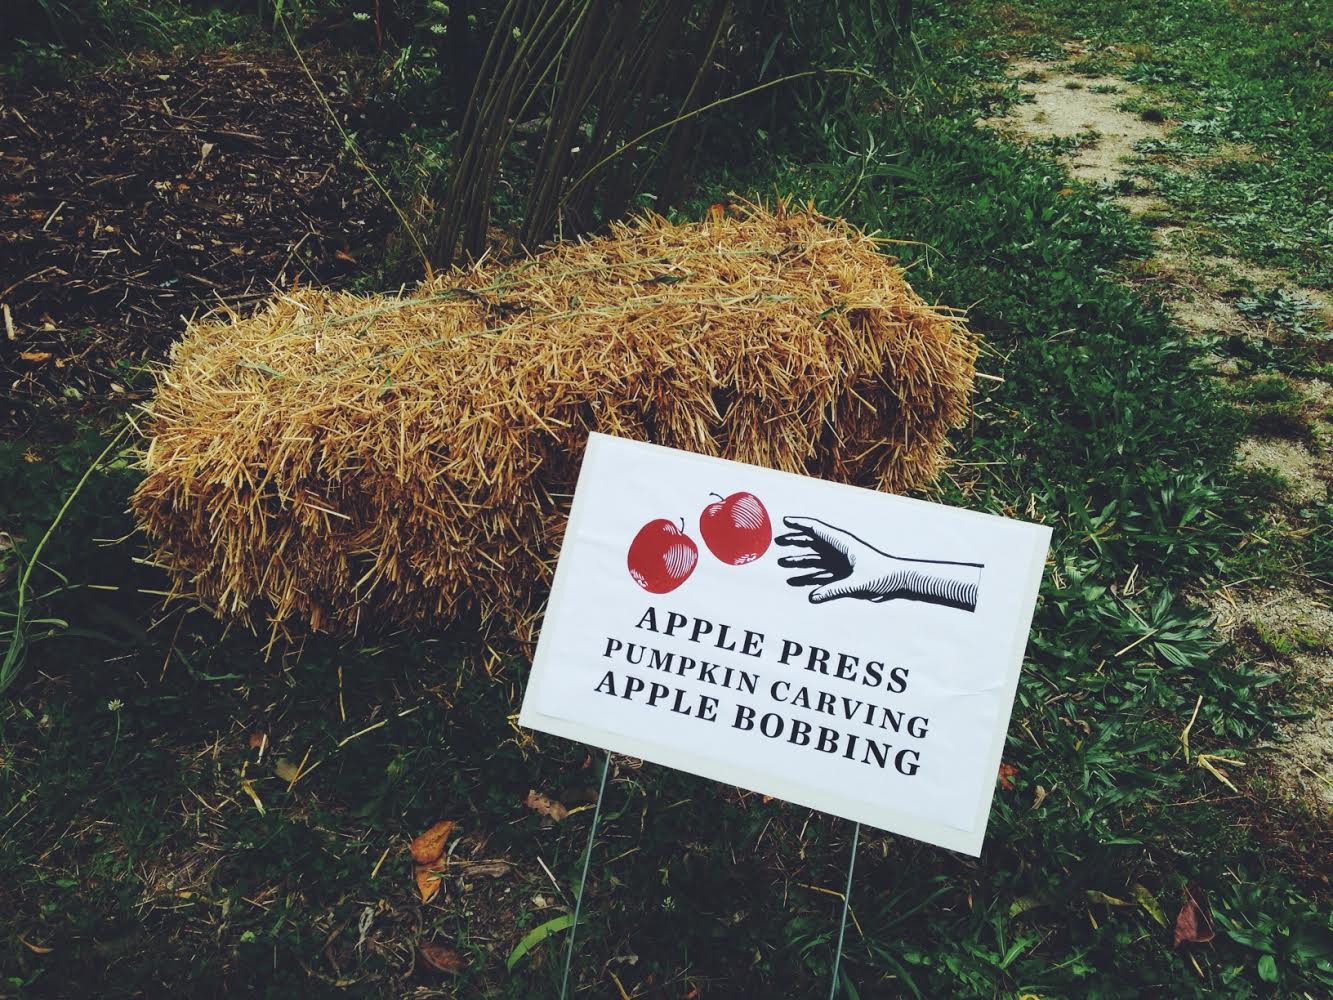 Signs guide guests to activities around the orchard...